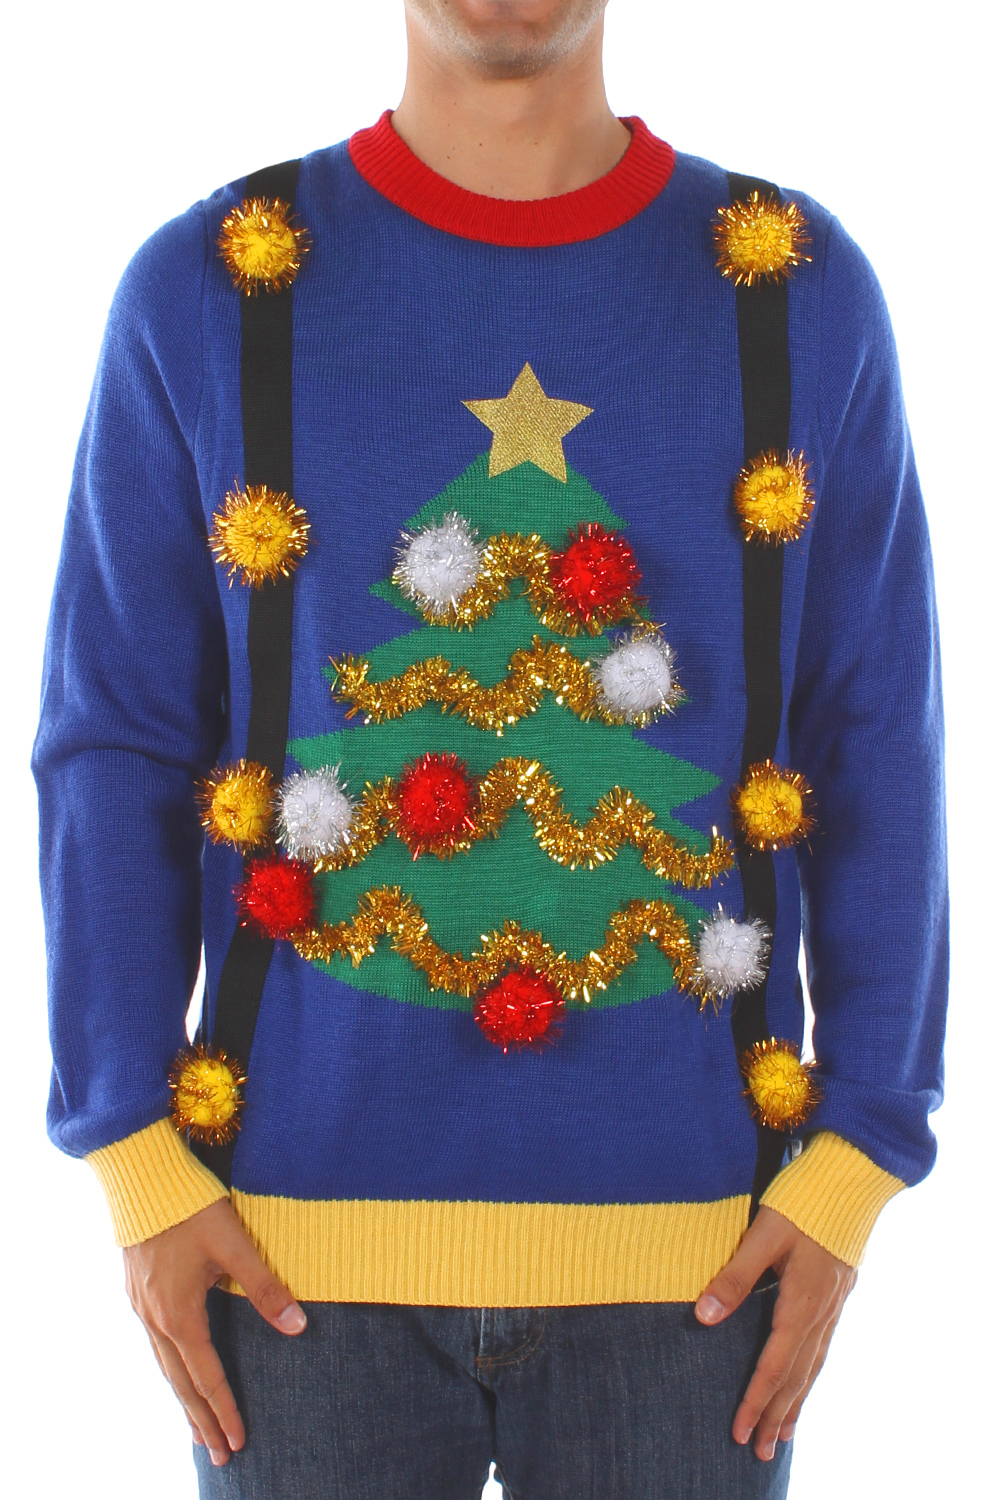 Christmas Sweaters - Men's Ugly Christmas Tree Sweater with ...